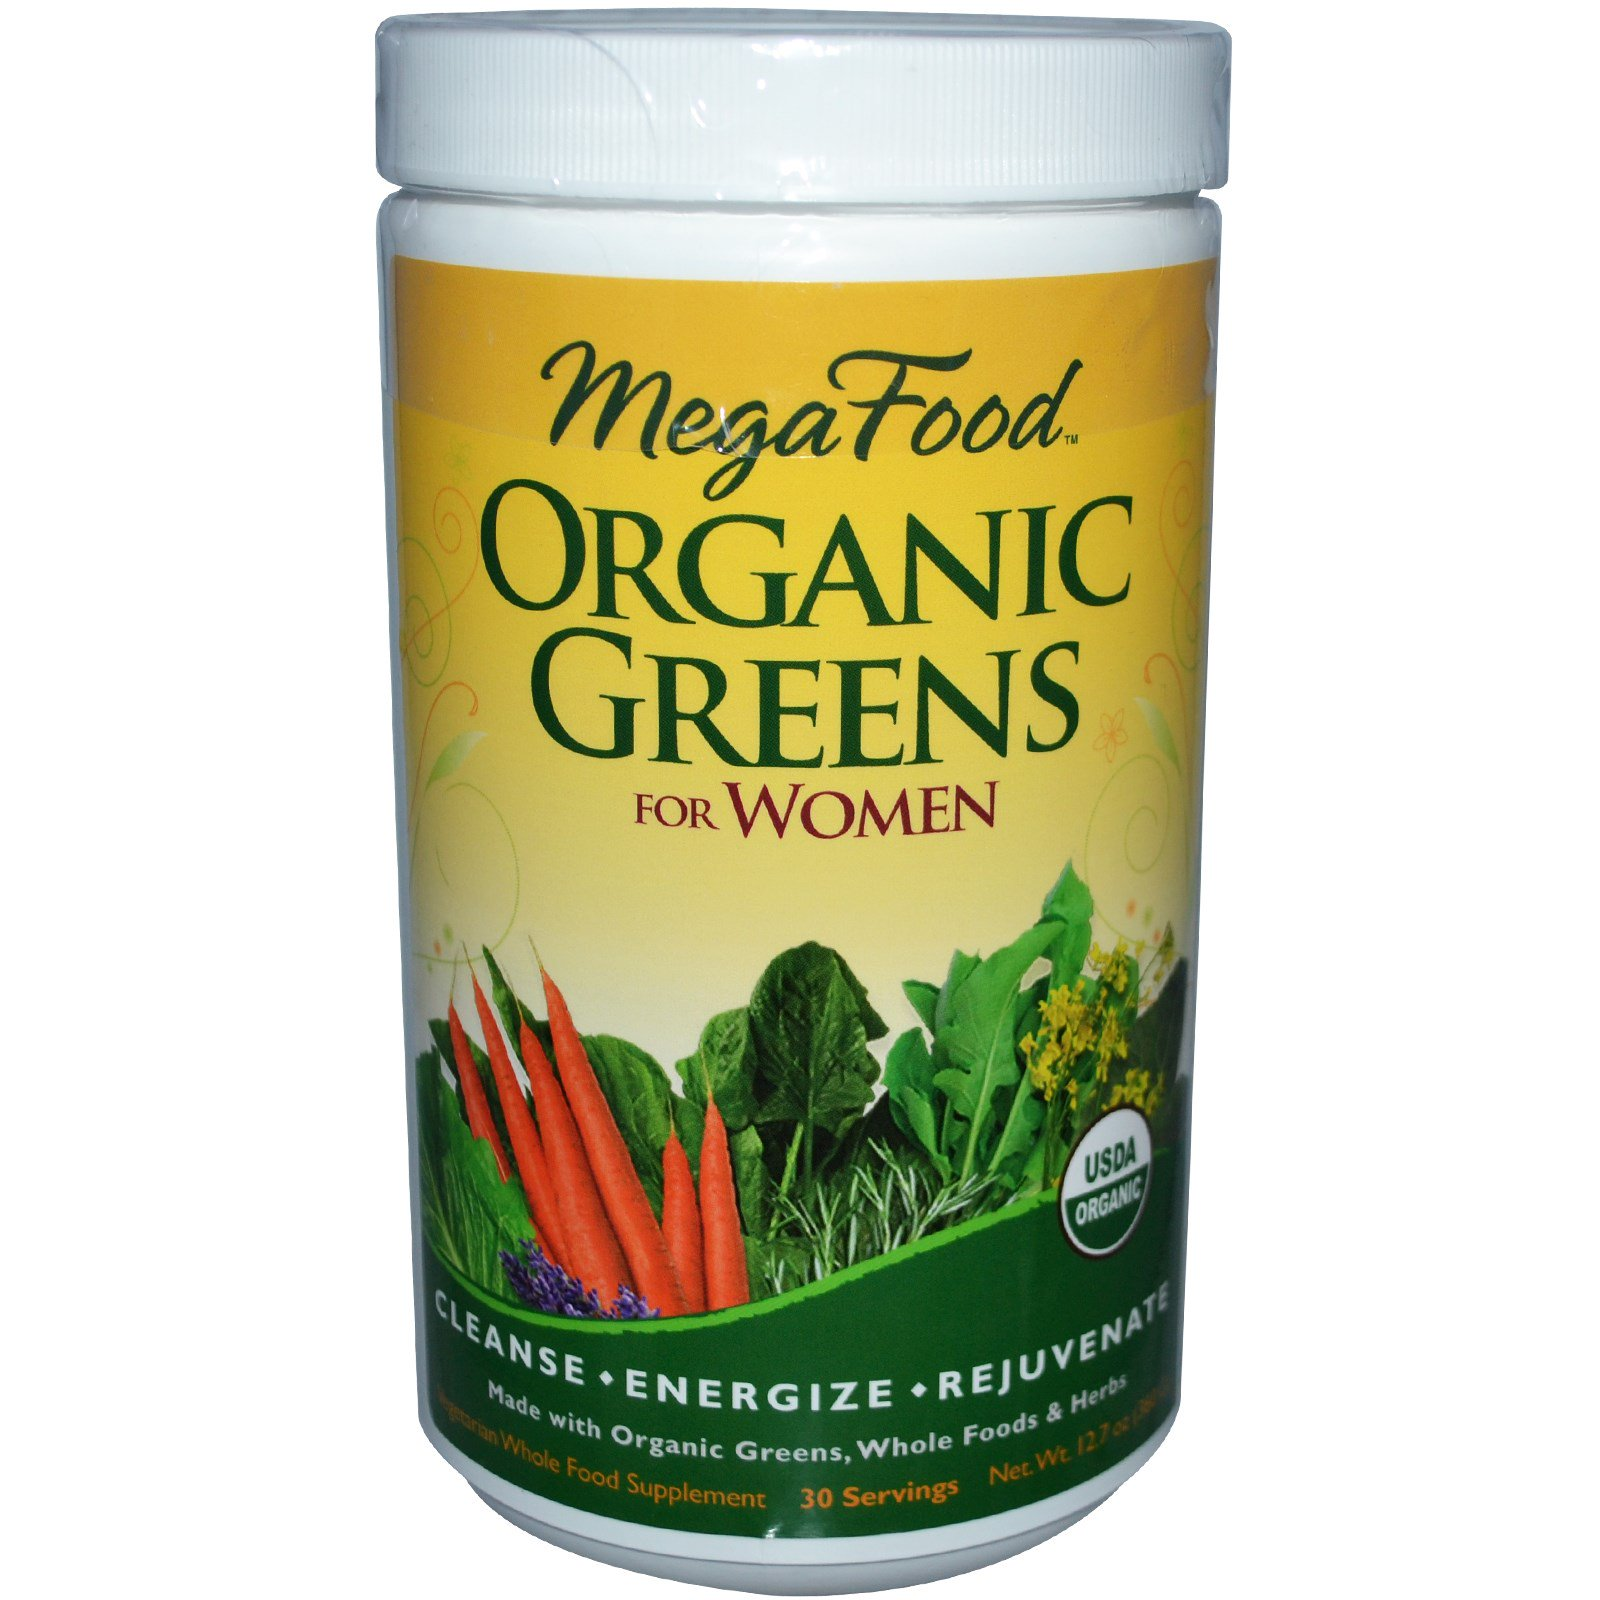 MegaFood, Organic Greens for Women, 12.7 oz (360 g) (Discontinued Item